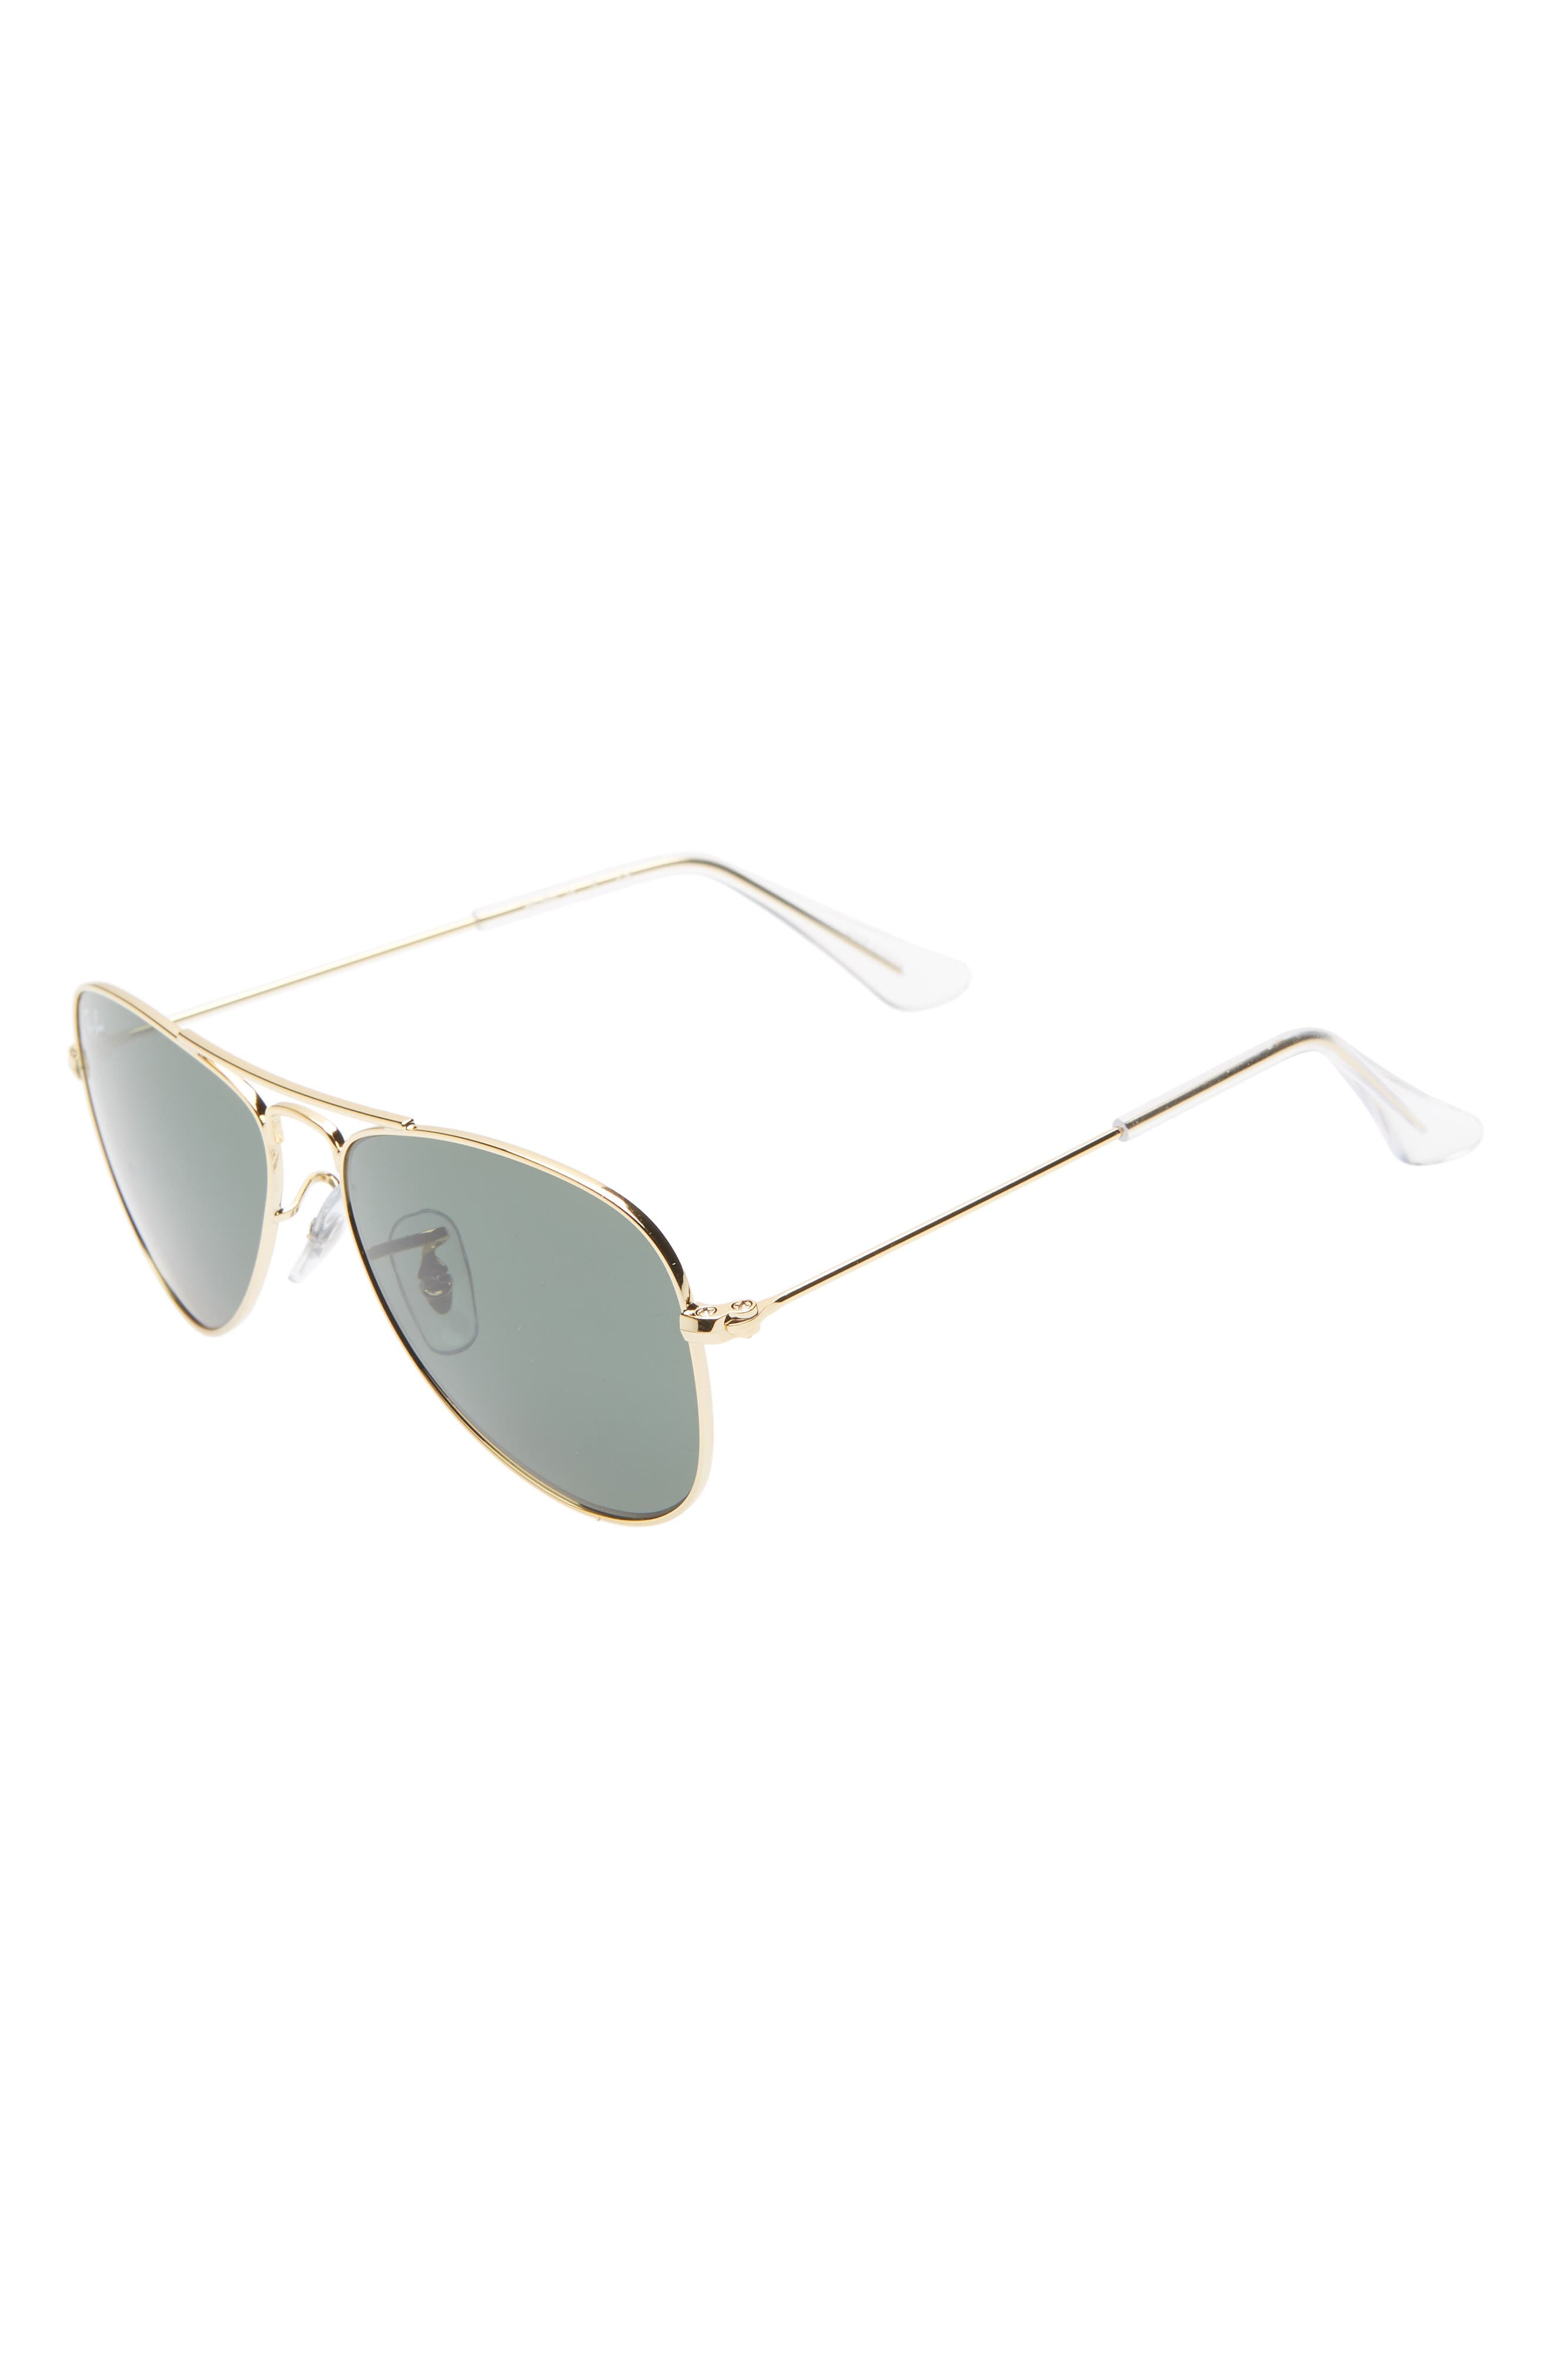 Ray-Ban Junior 50Mm Aviator Sunglasses - Gold/ Green Solid